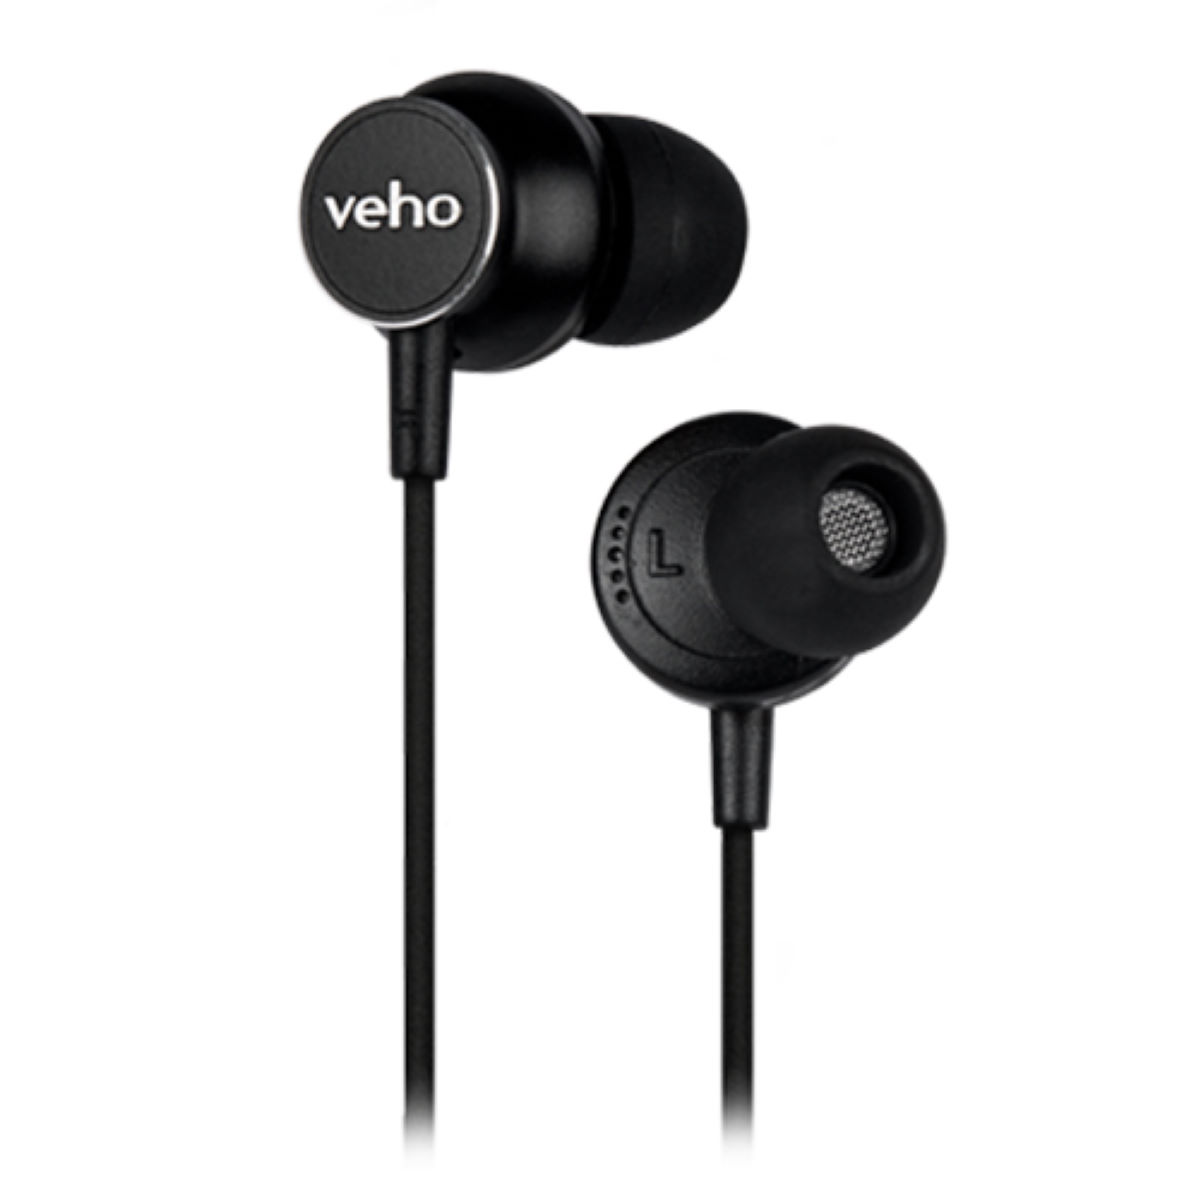 Veho Veho Z-3 In-Ear Stereo Headpones with Microphone   Headphones